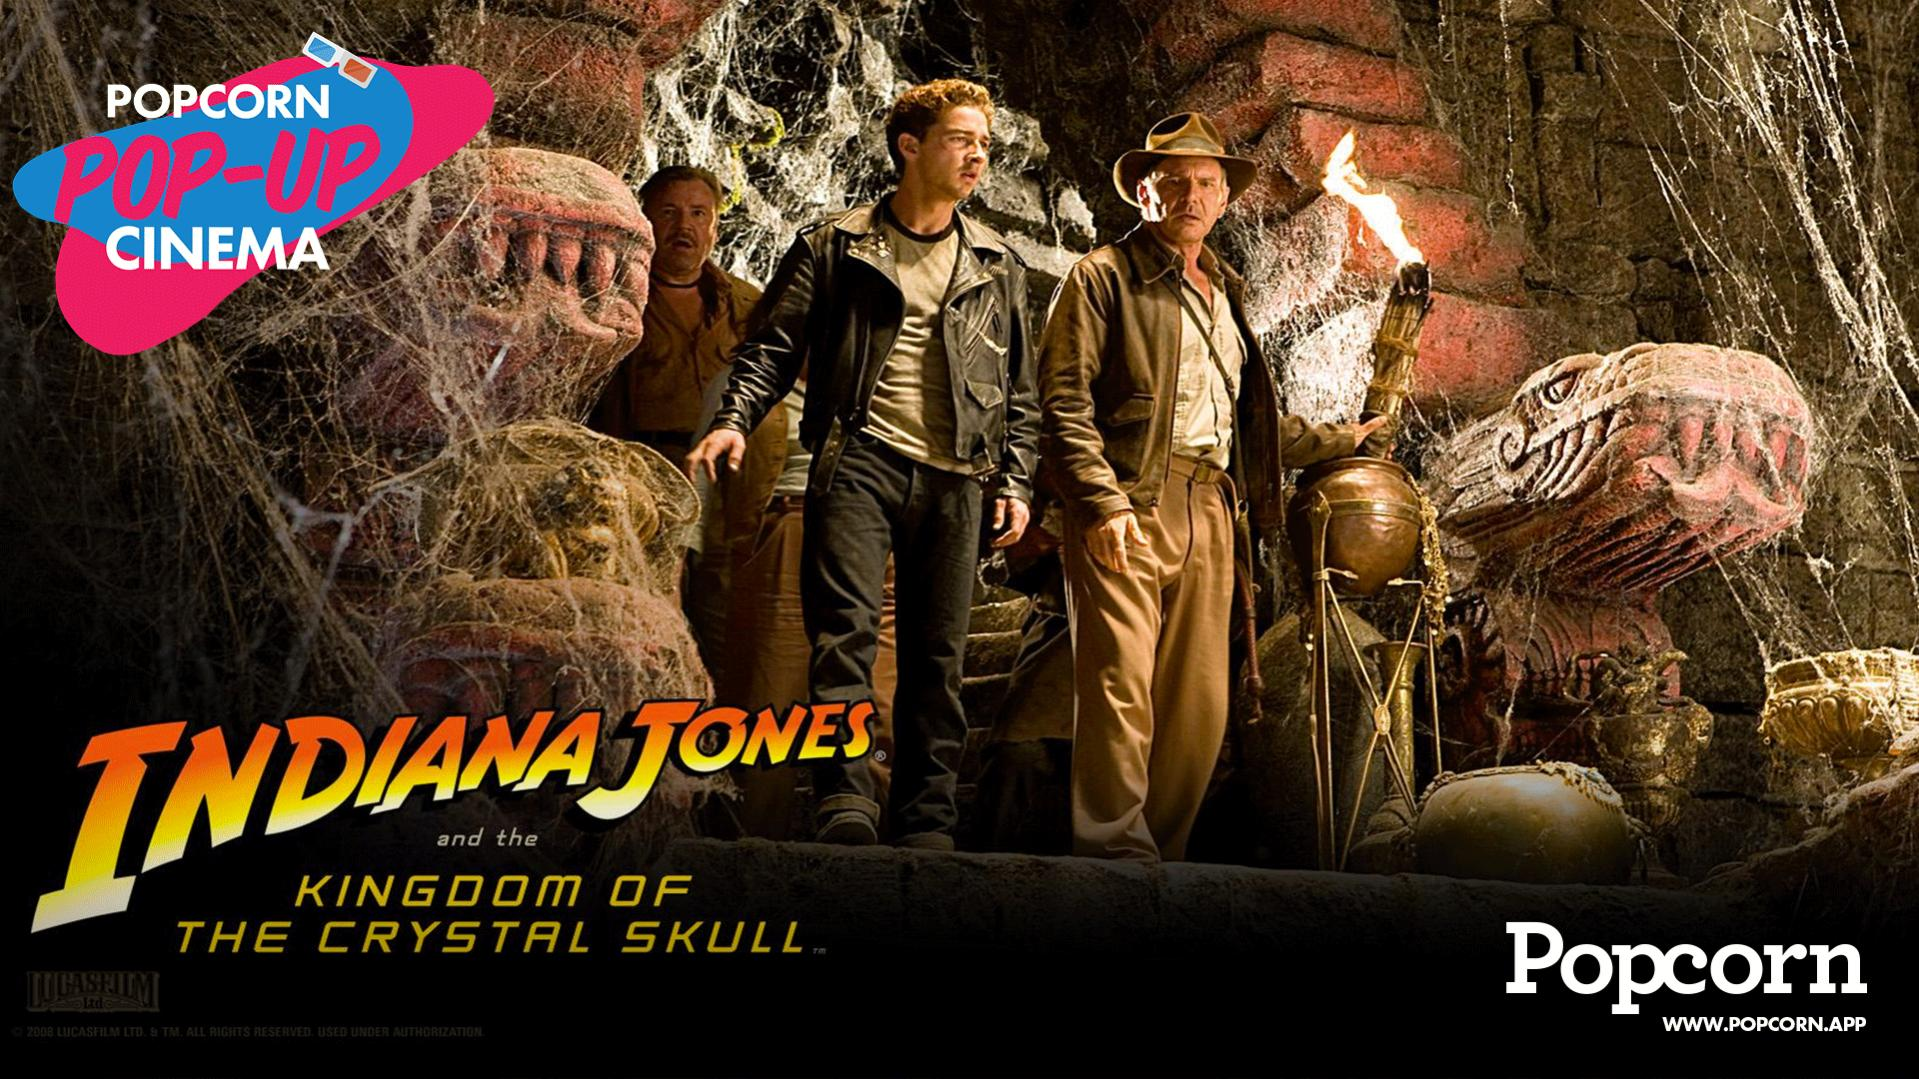 Indiana Jones and the Kingdom of the Crystal Skull Pop-Up Cinema by Popcorn App